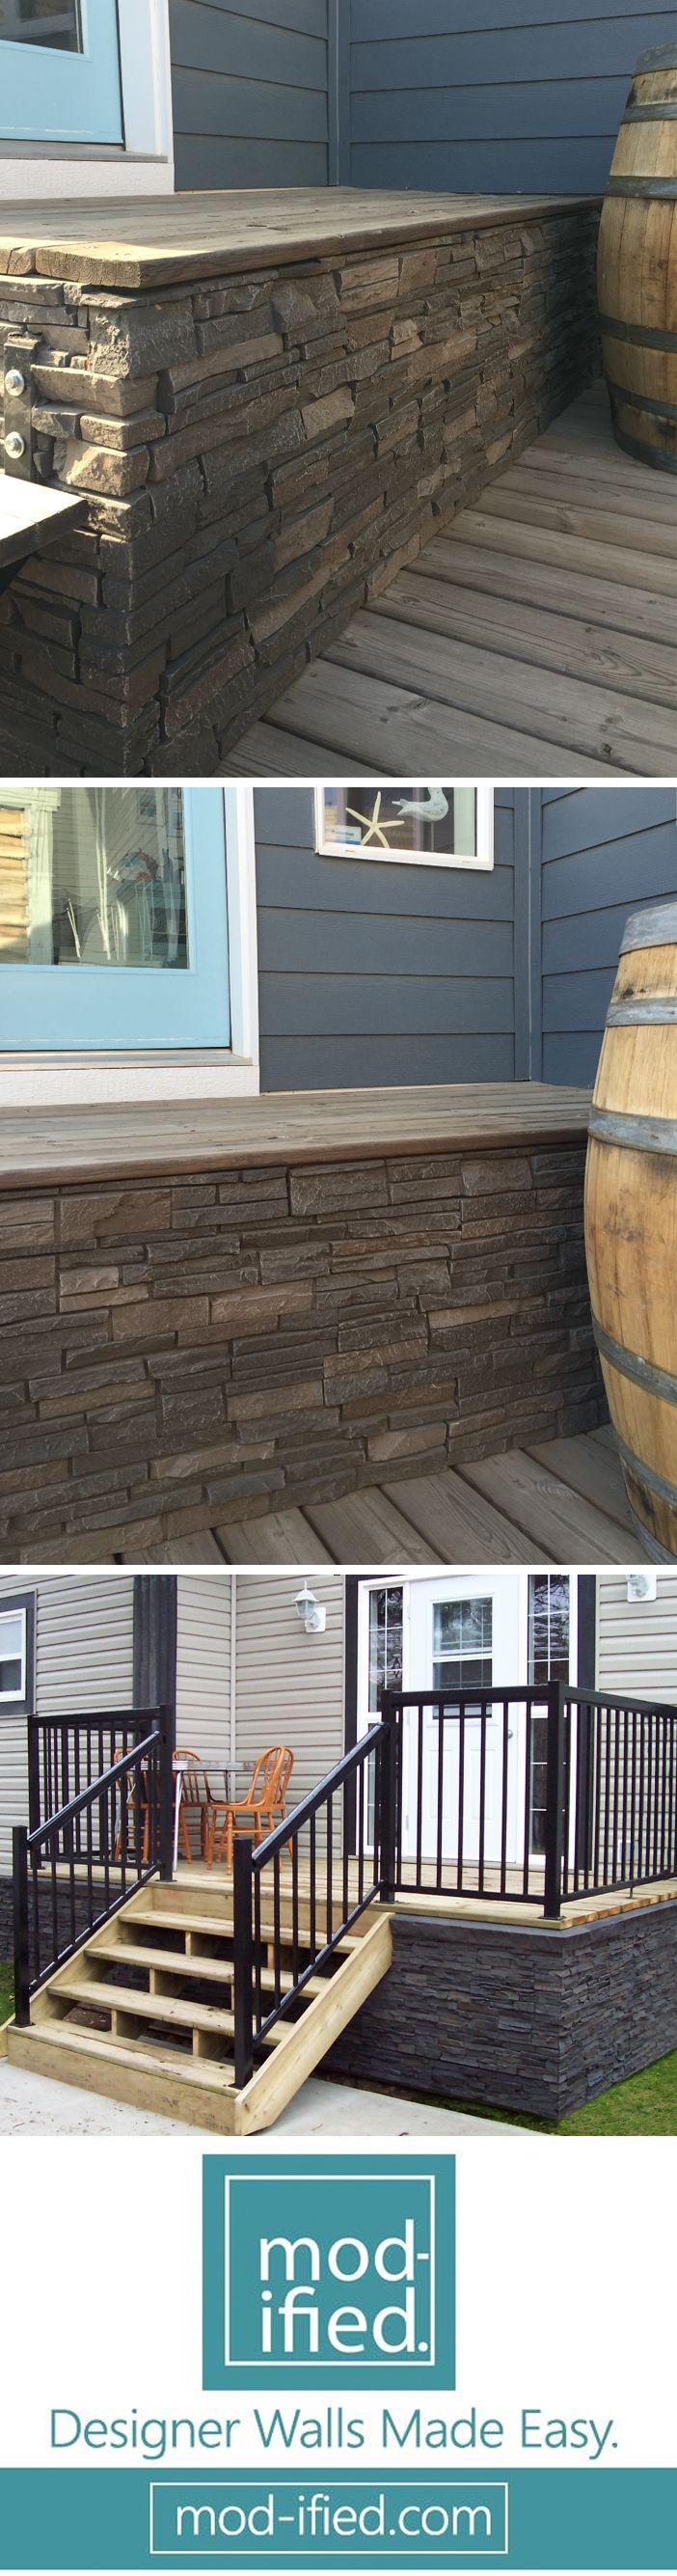 Quality Stone Faux Stone Panels can dress up your deck skirting in style.